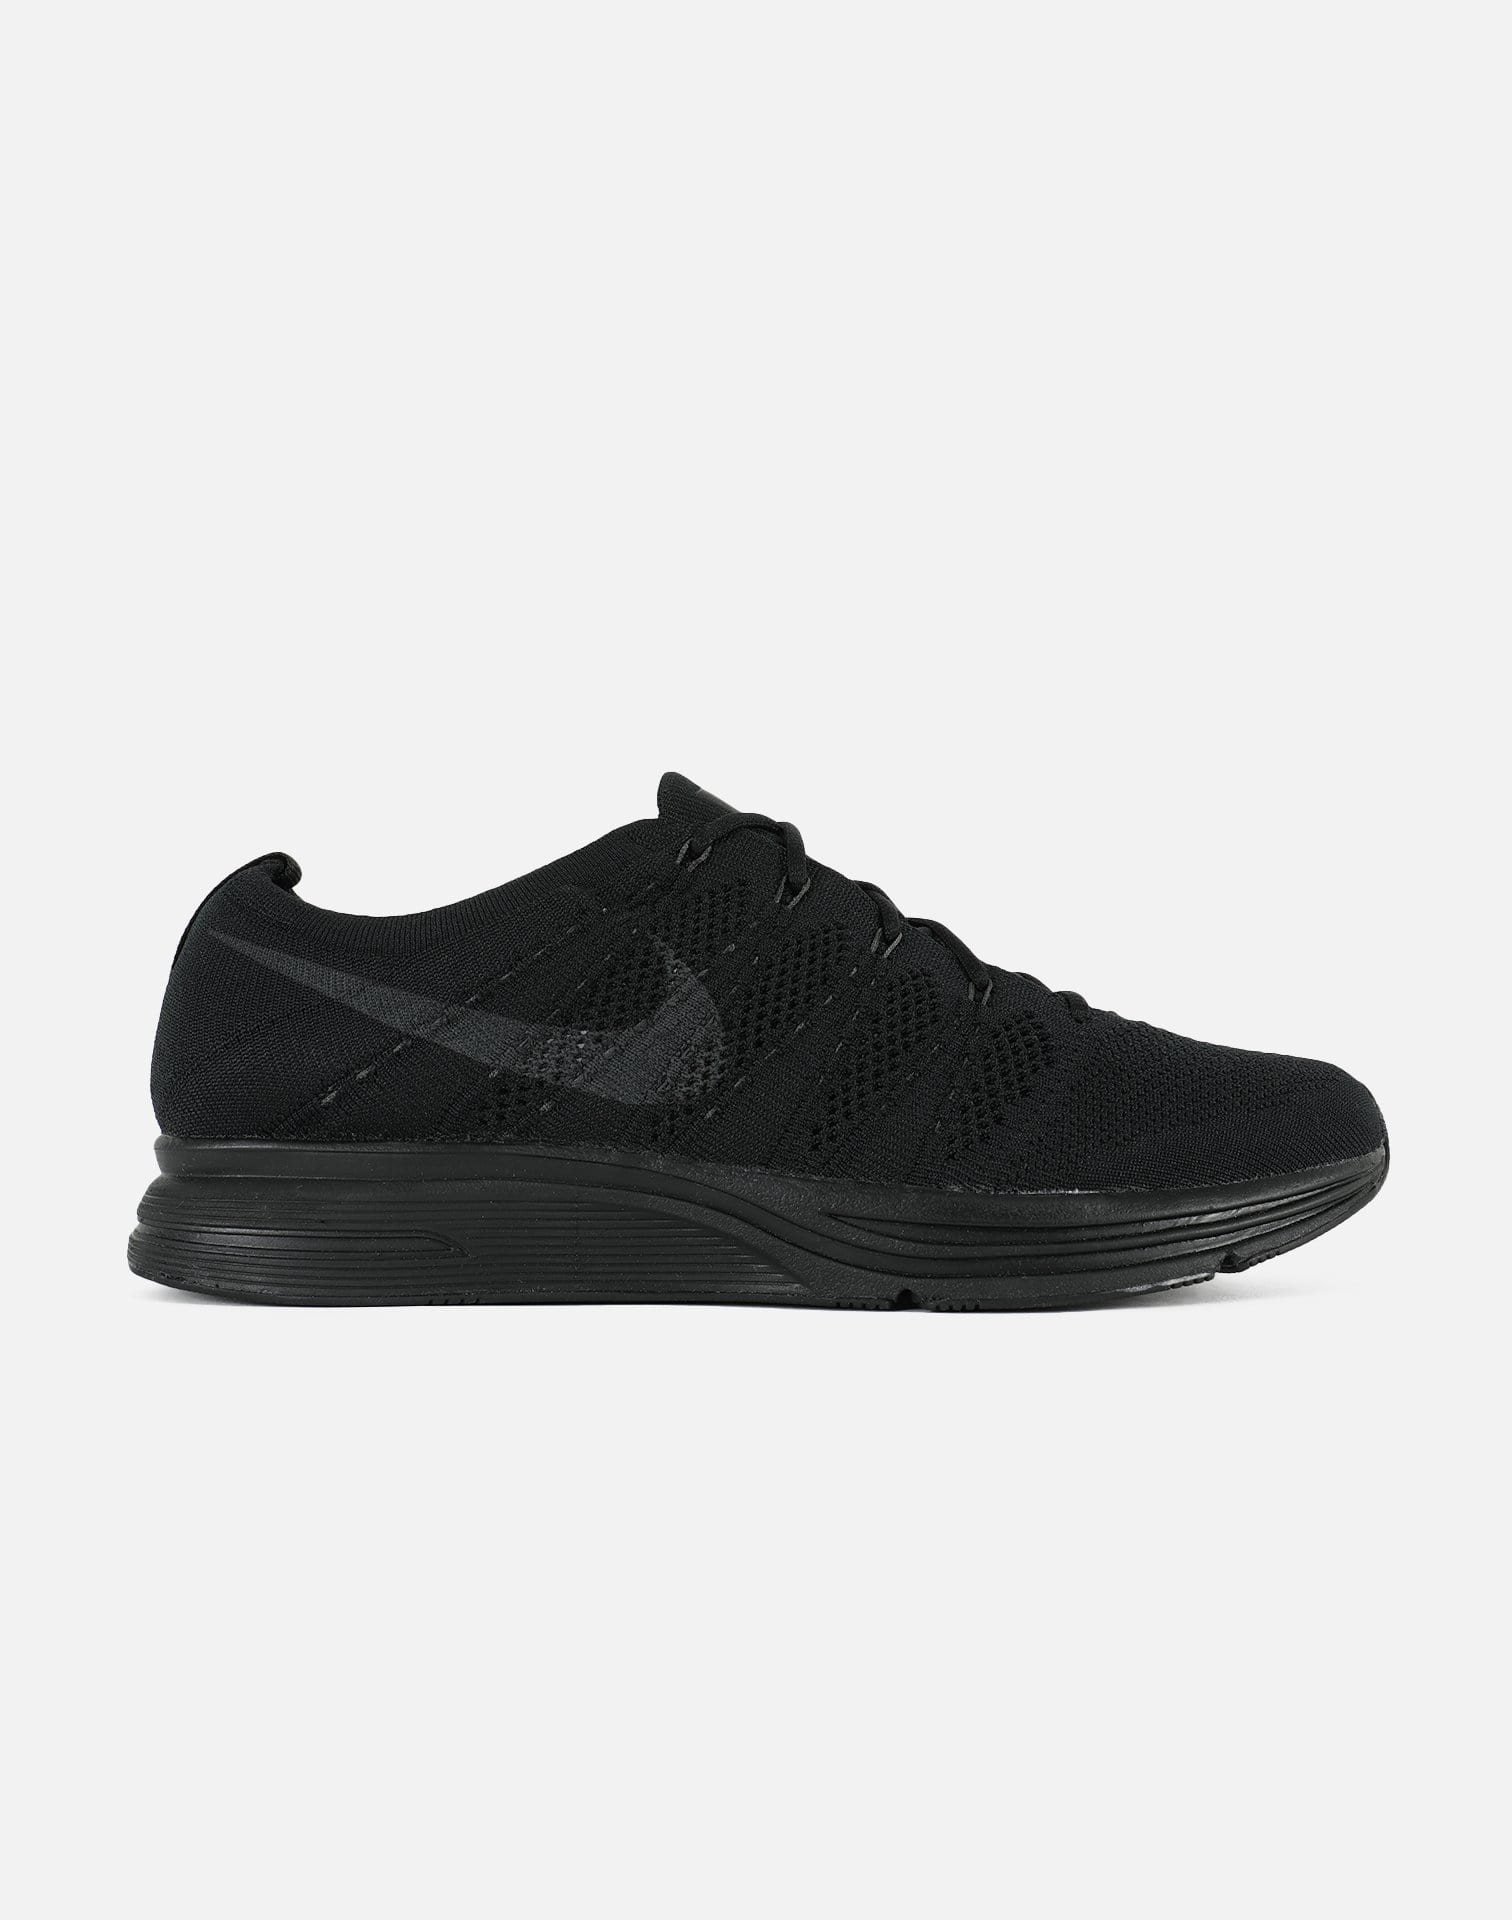 Nike Men's Flyknit Trainer QS 'Black Anthracite'